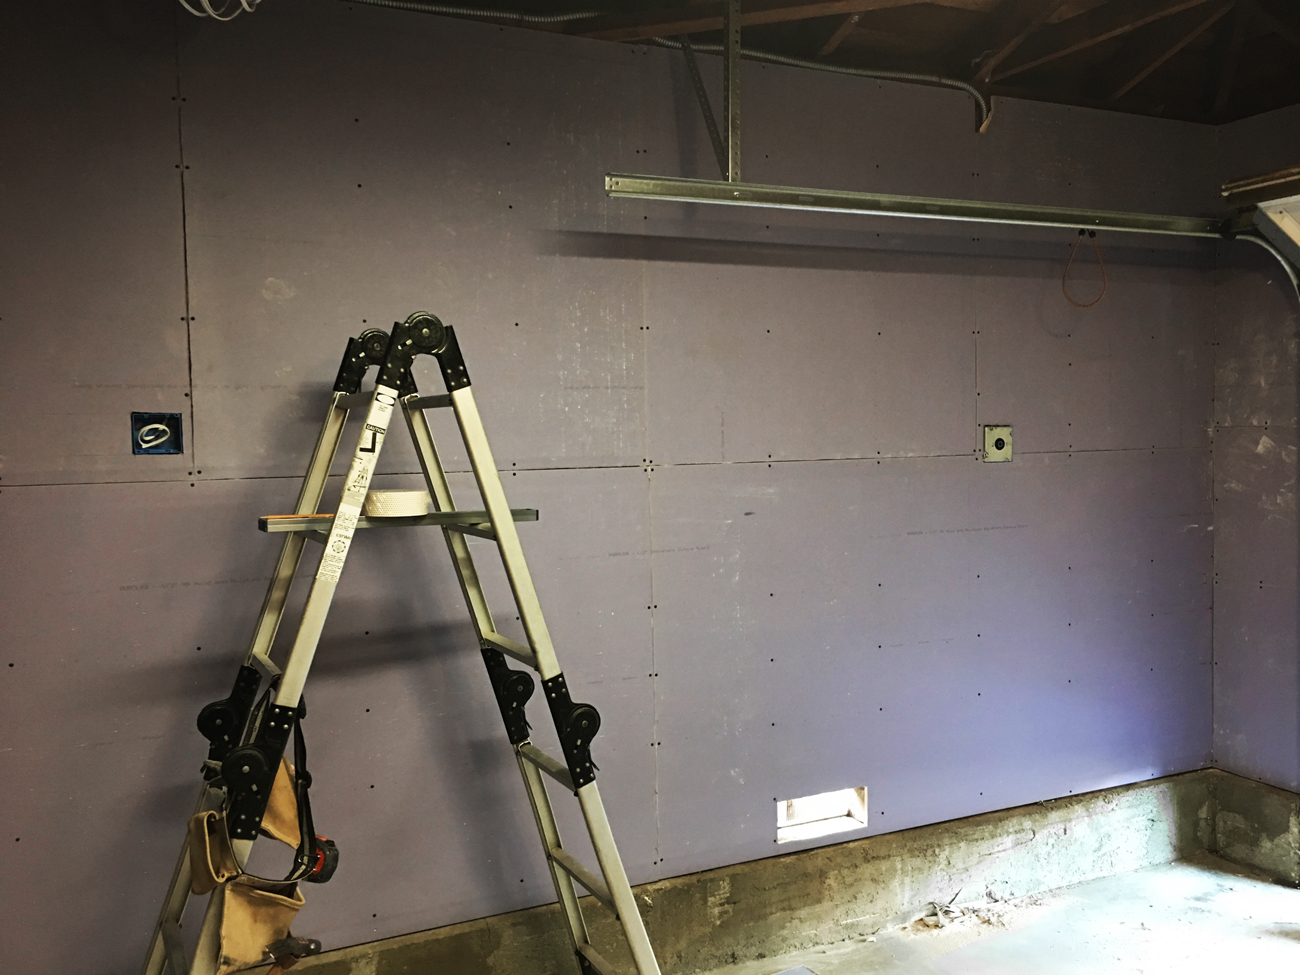 New Sheetrock on the garage wall at the Tiffanys